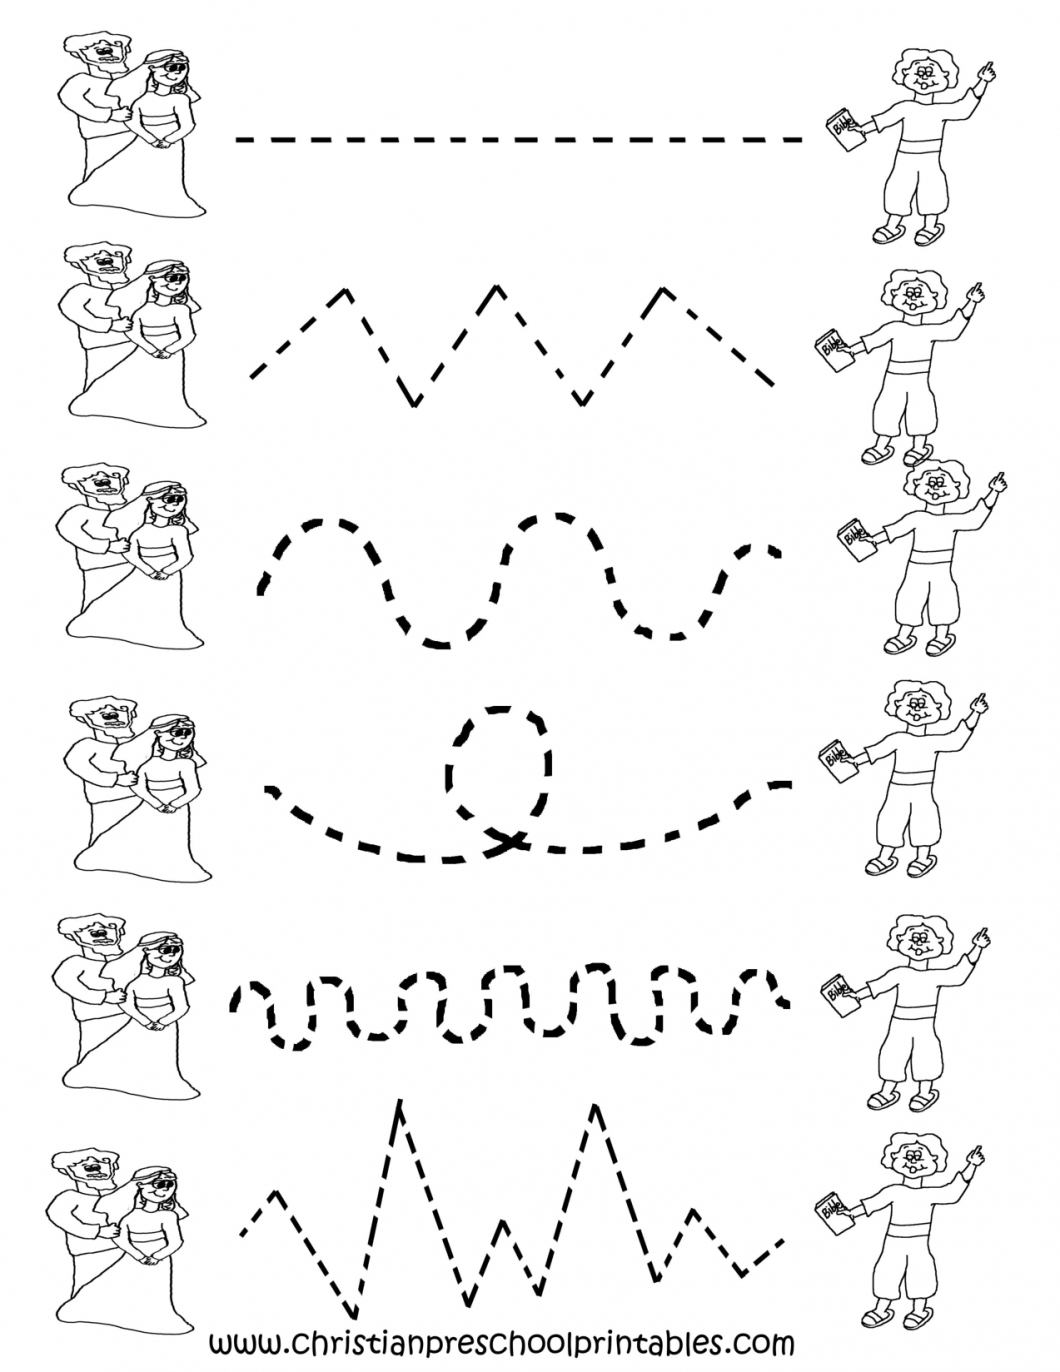 Free Printable Pre K Worksheets – With Abc For Also Preschool | Free Printable Toddler Worksheets